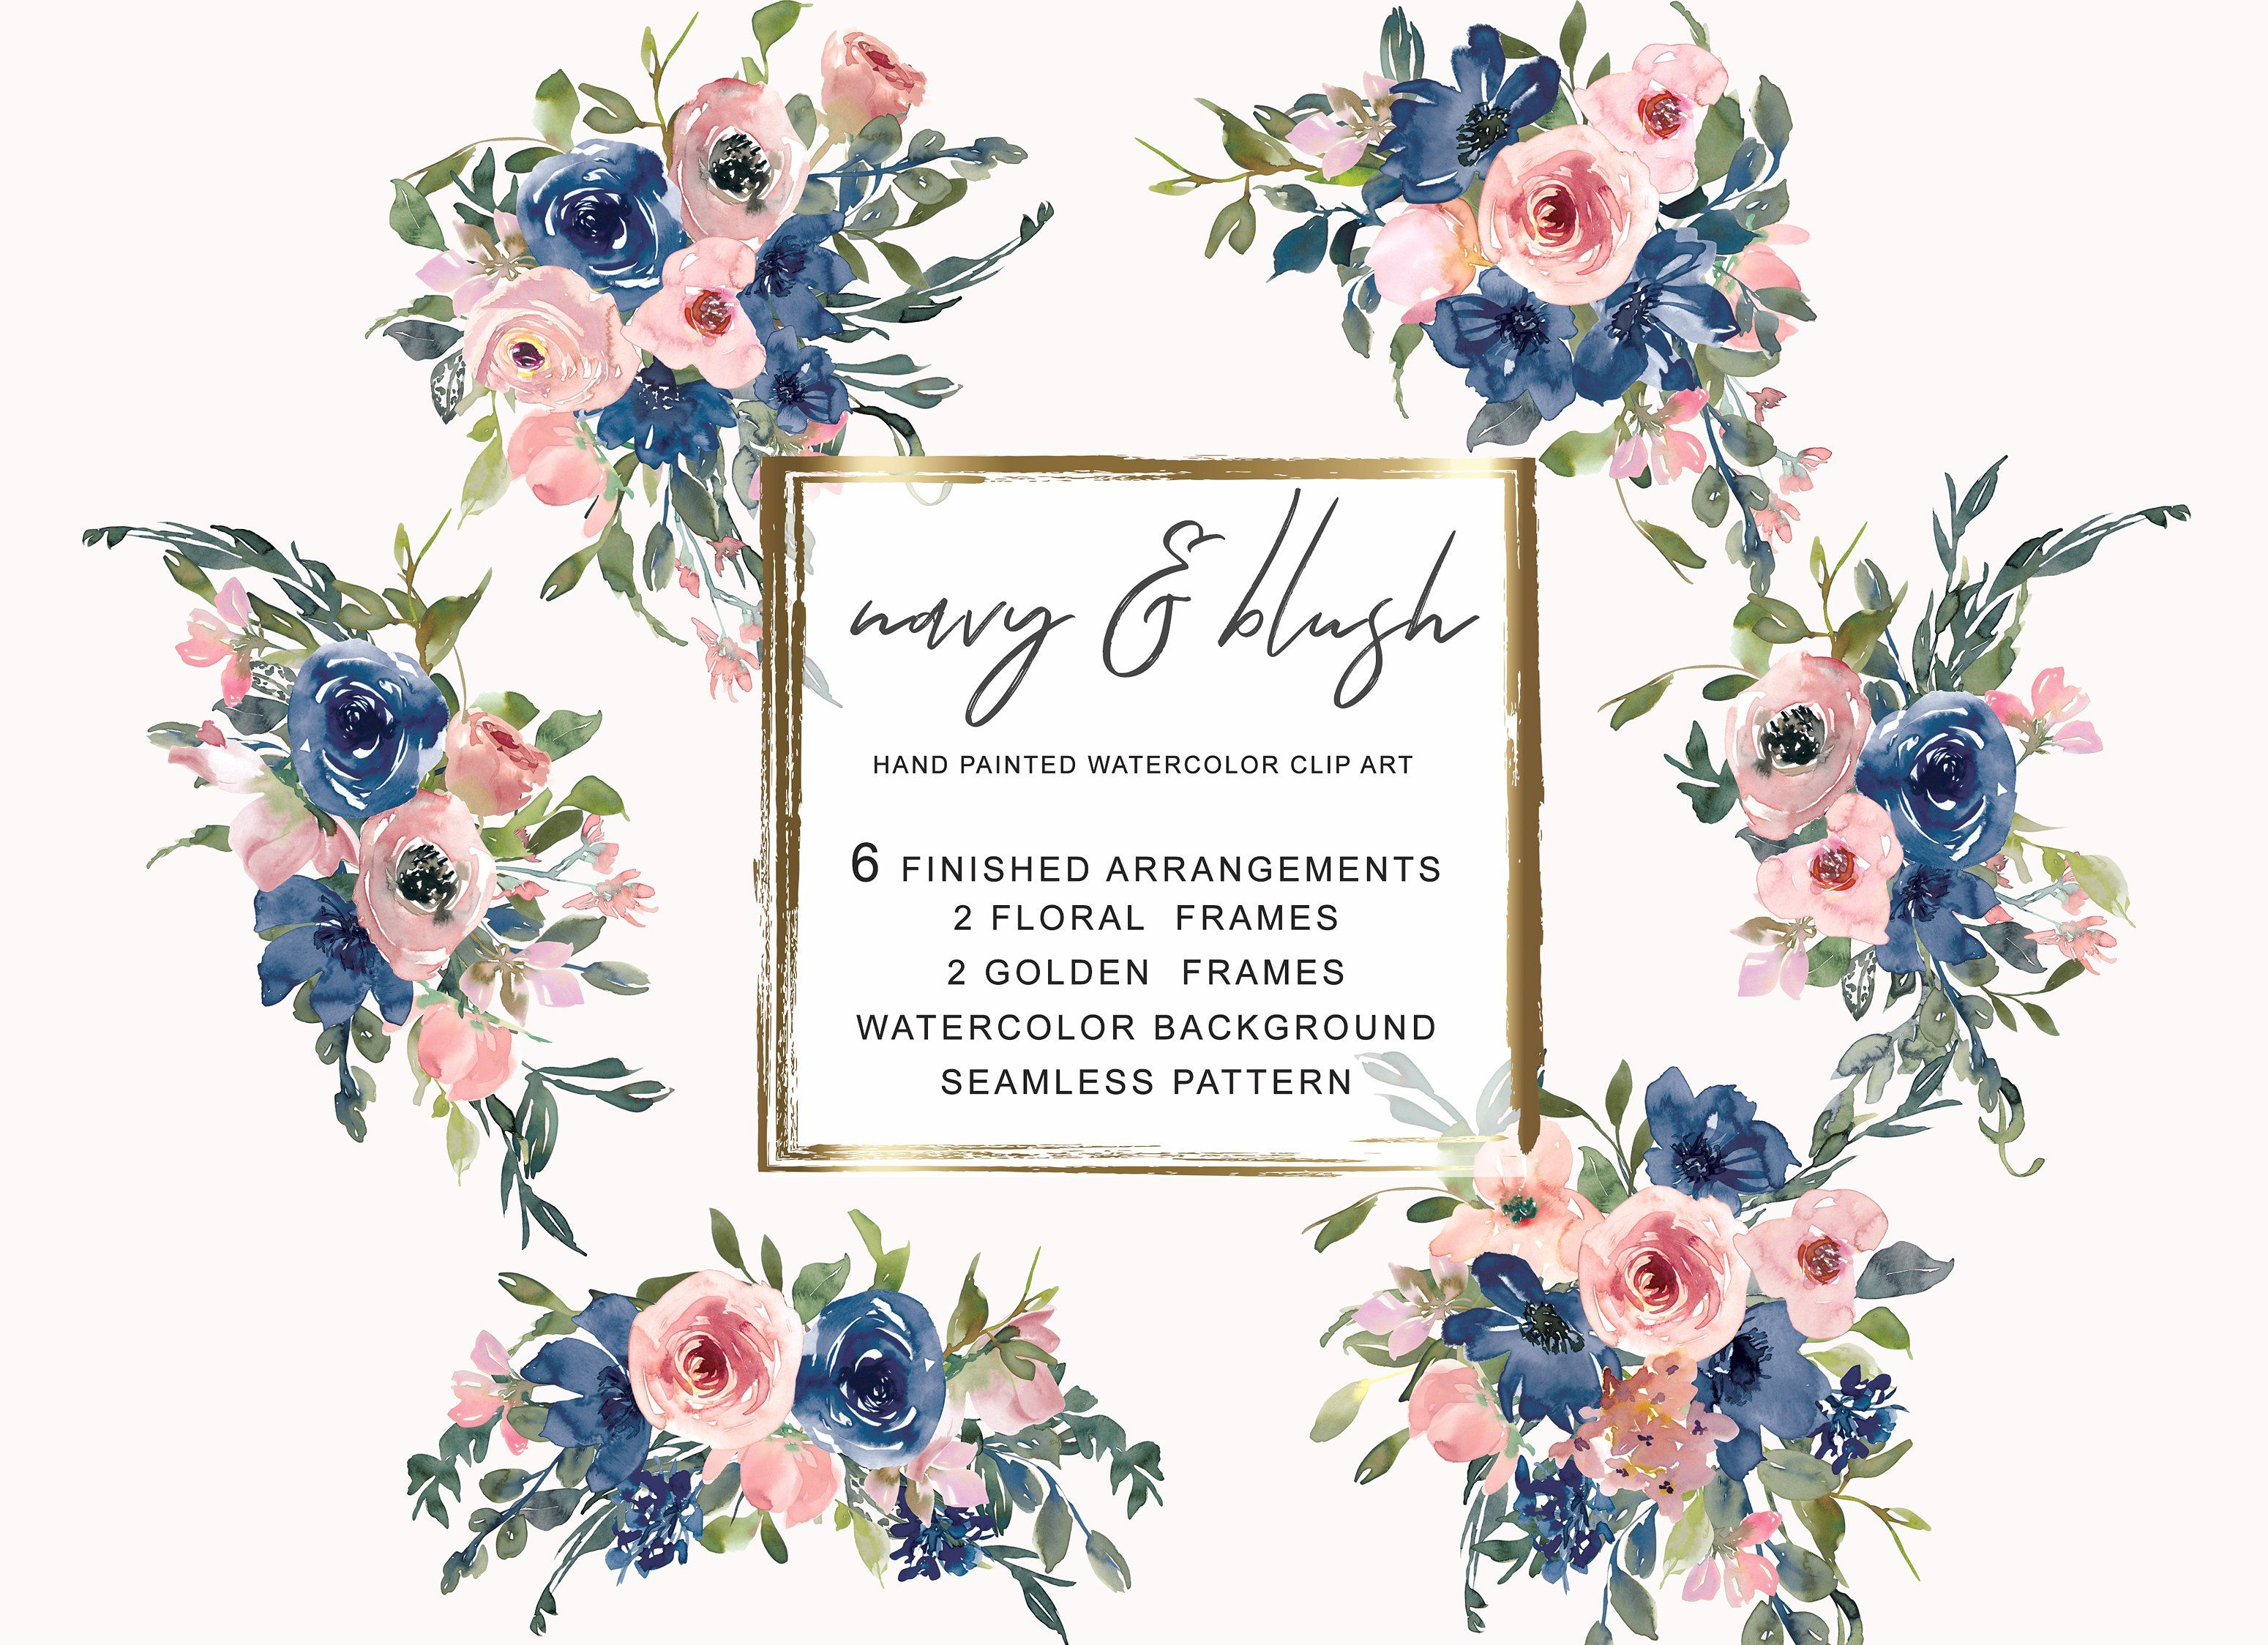 Watercolor Navy And Blush Floral Bou Clip Art Floral Bouquets